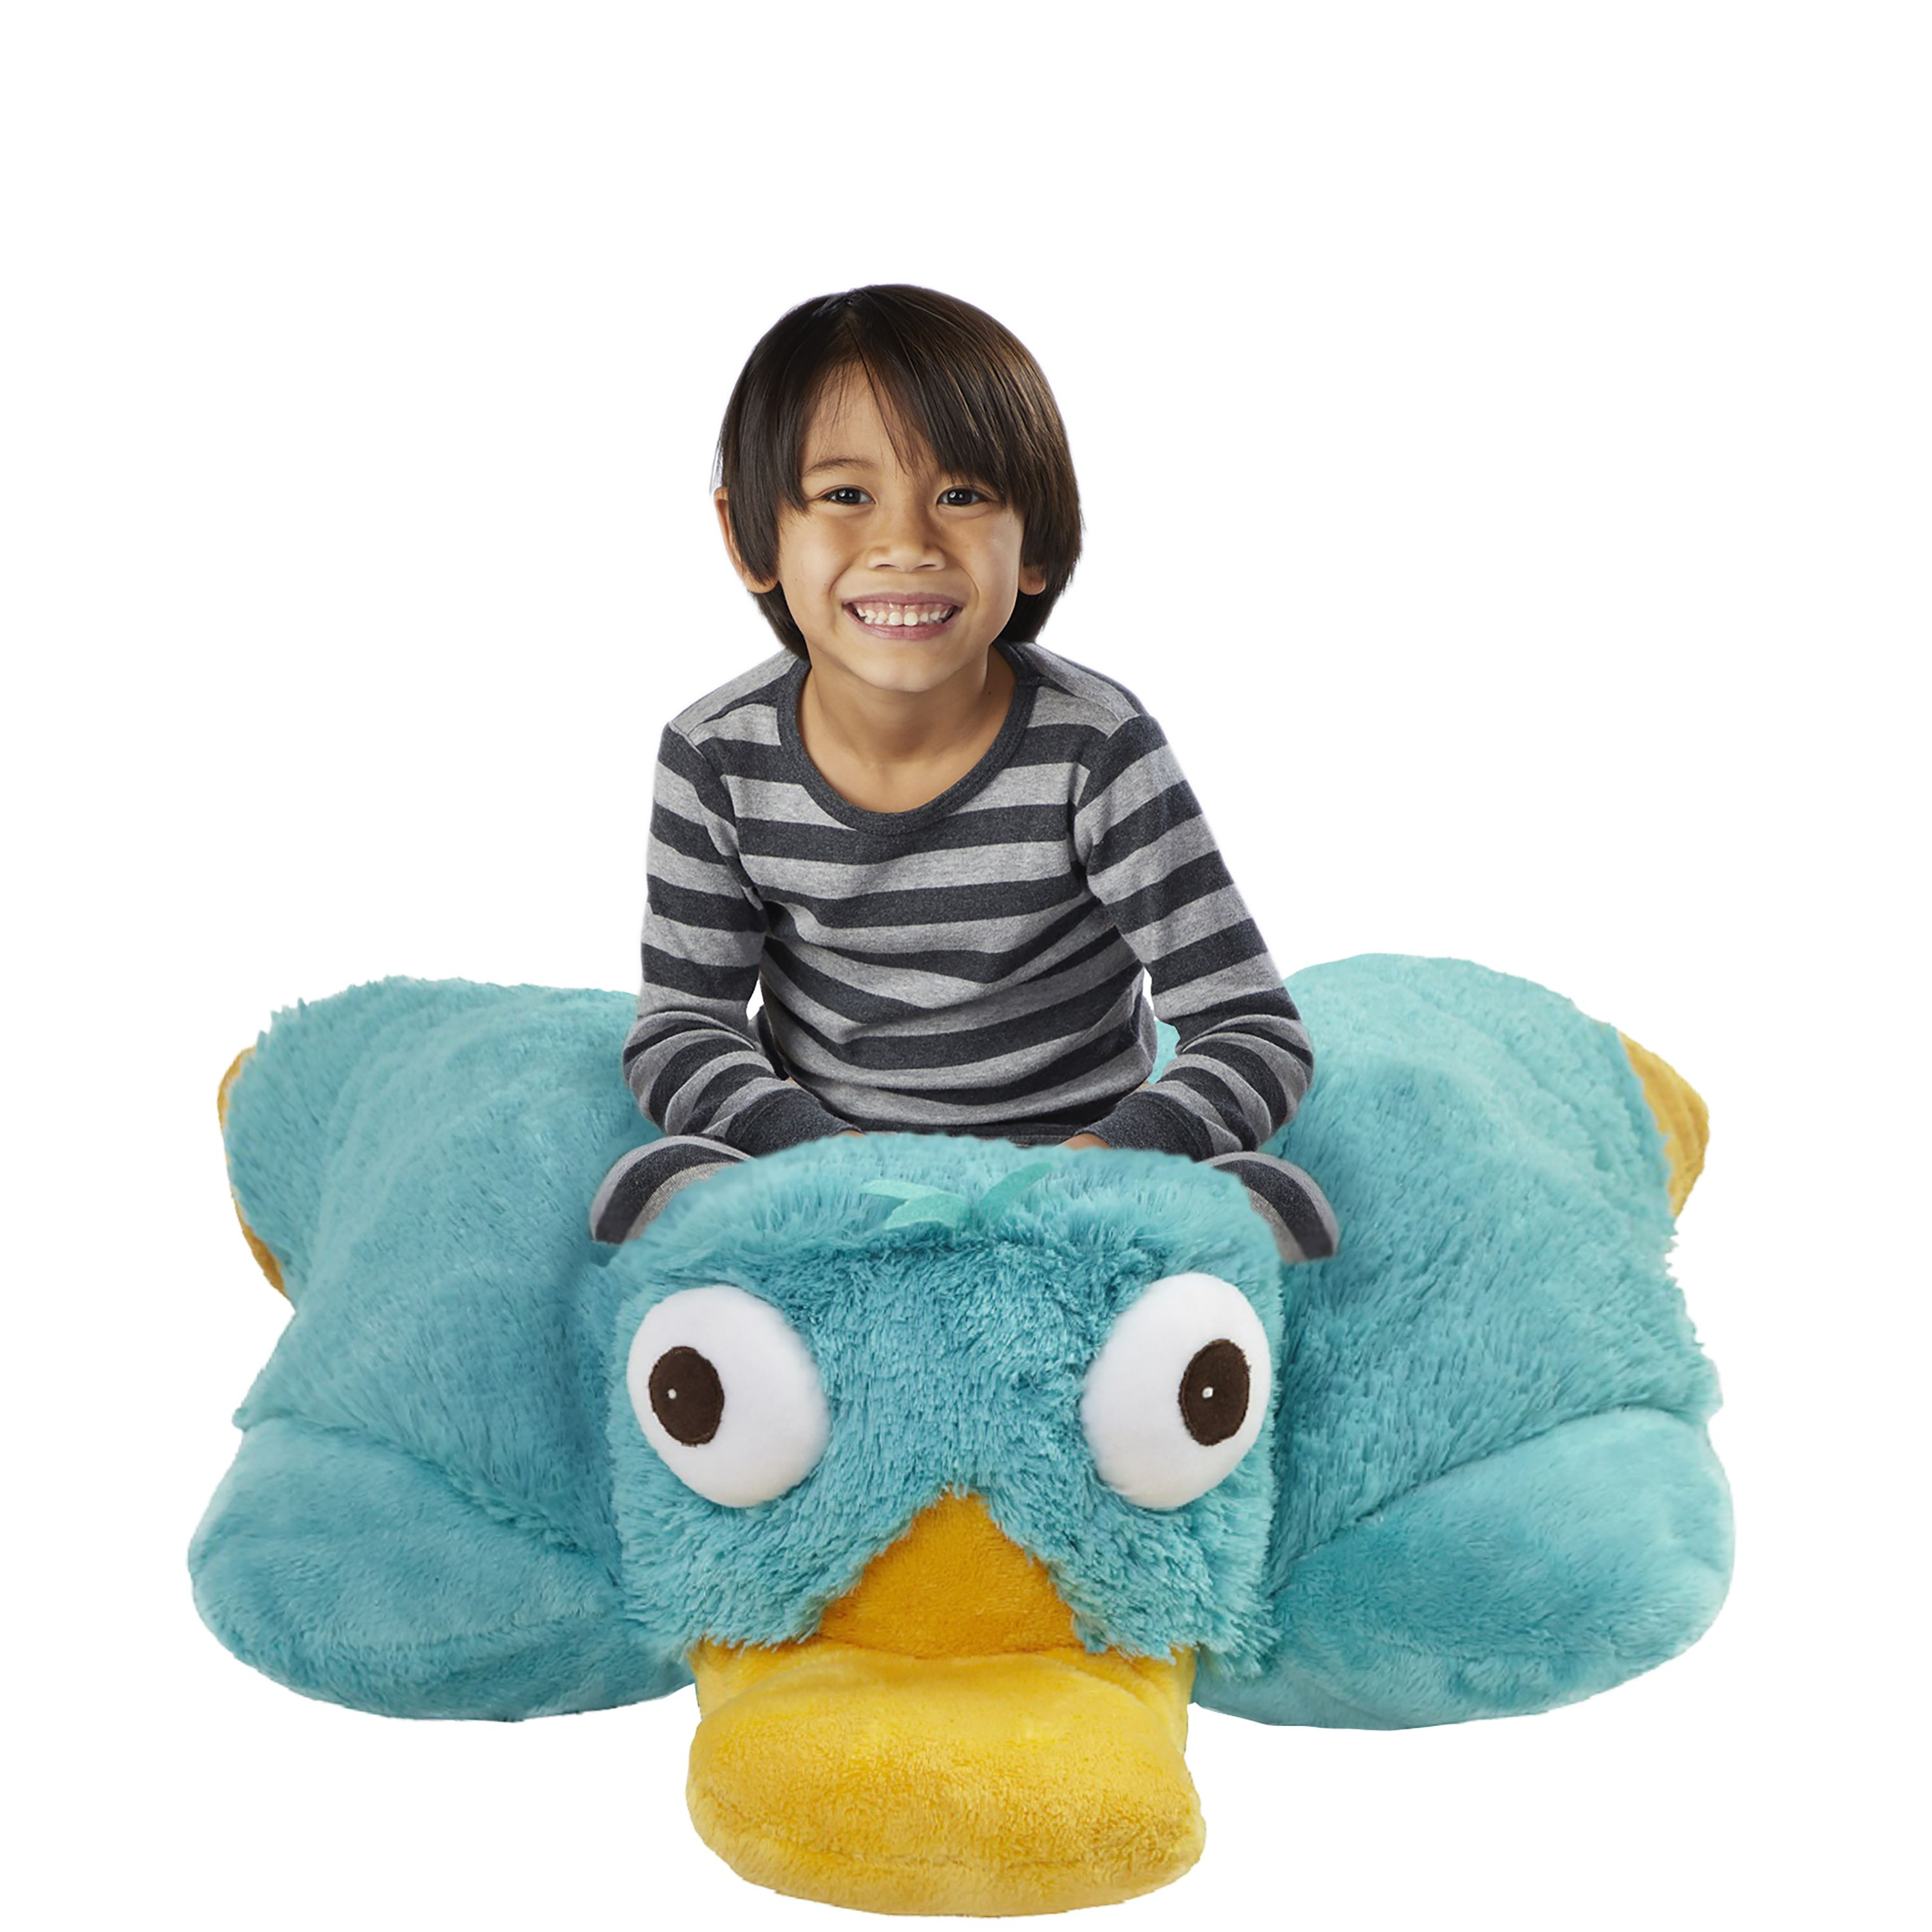 Pillow Pets The Official Home Of Pillow Pets Animal Pillows Plush Stuffed Animals Perry The Platypus